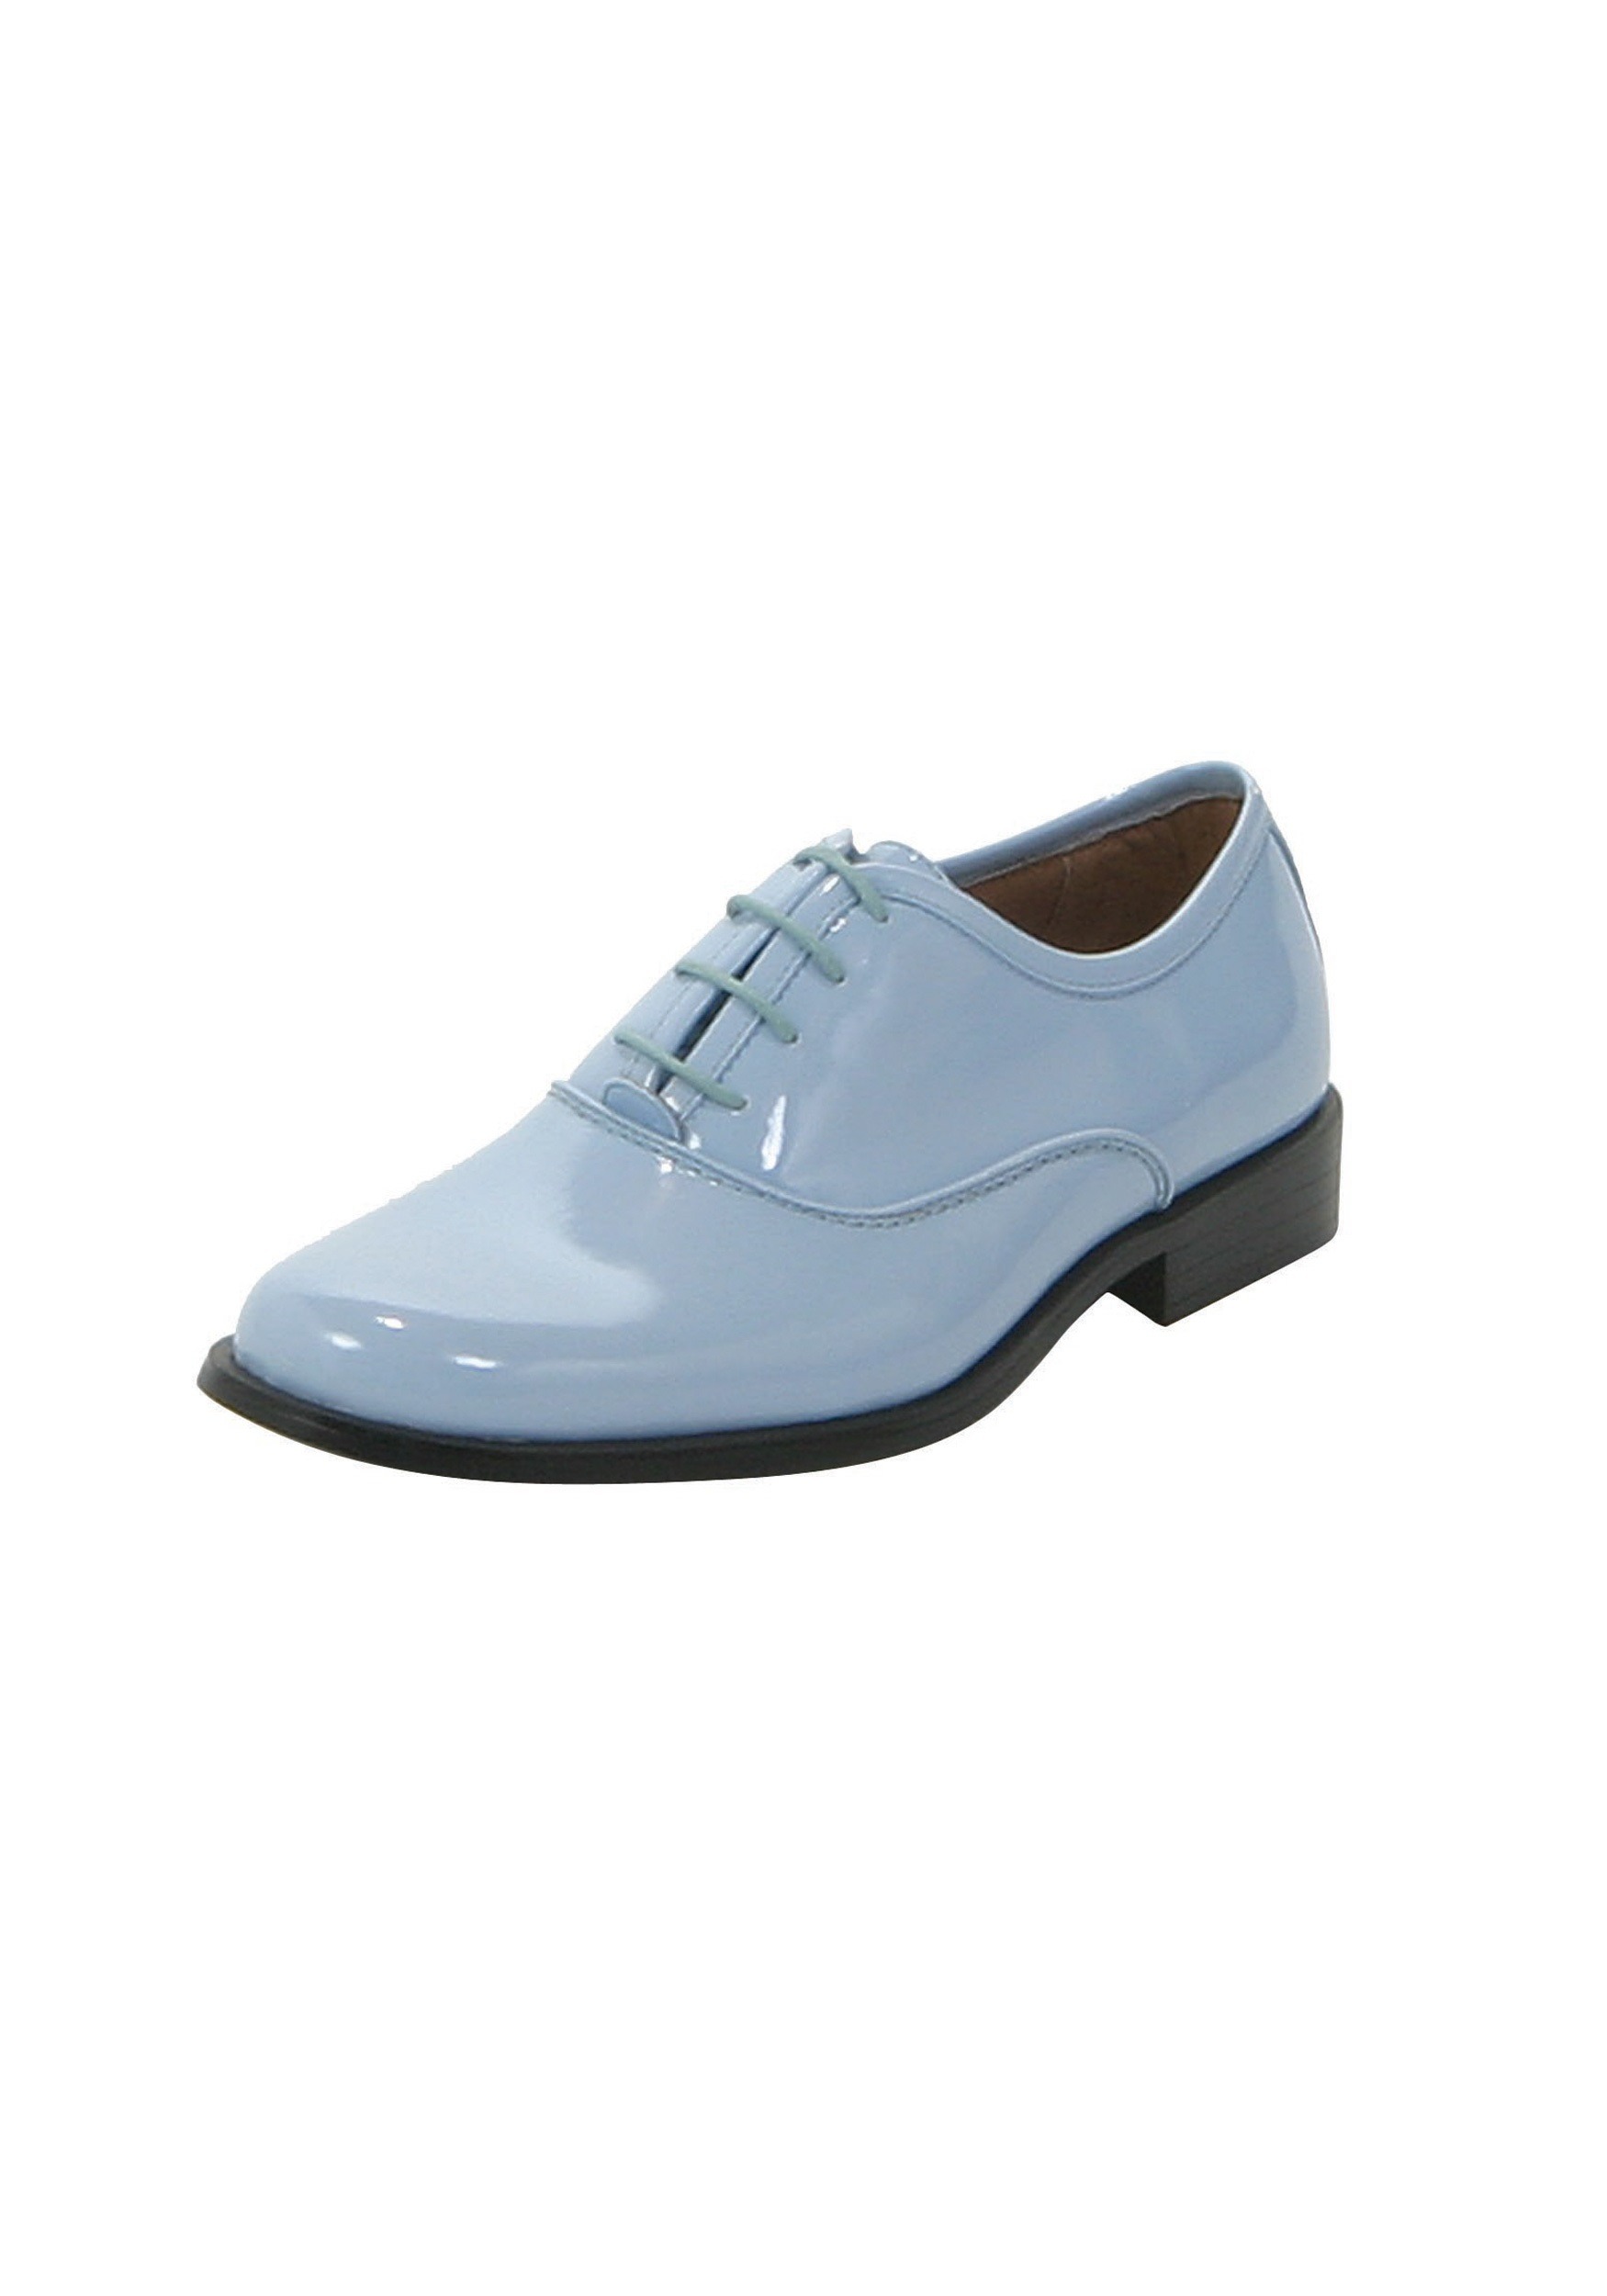 formal blue tuxedo shoes dumb and dumber costume accessories